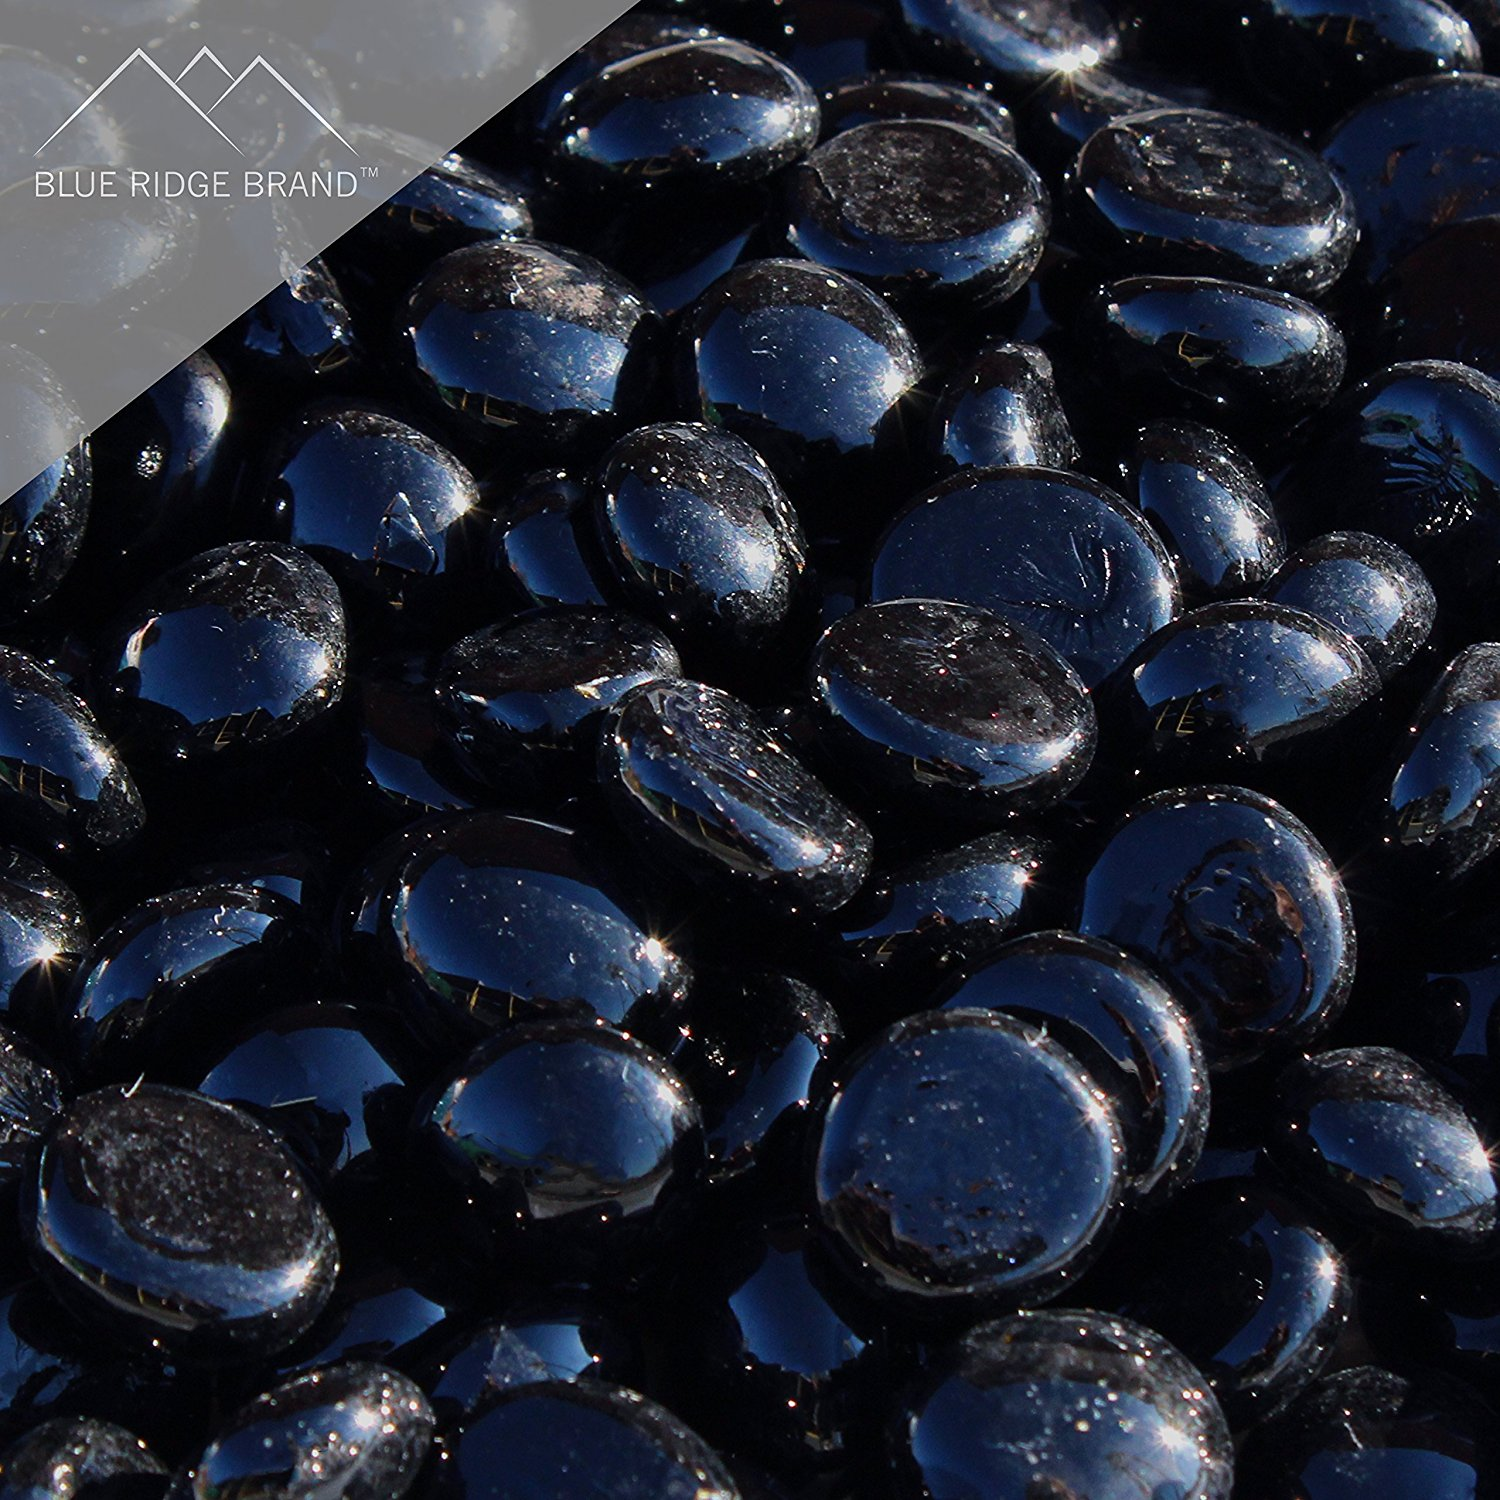 "Fire Pit Glass - Black Reflective Fire Glass Beads 3/4"" - Reflective Fire Pit Glass Rocks - Blue Ridge Brand™ Reflective Glass Beads for Fireplace and Landscaping 3, 5, 10, 20, 50 Pounds"